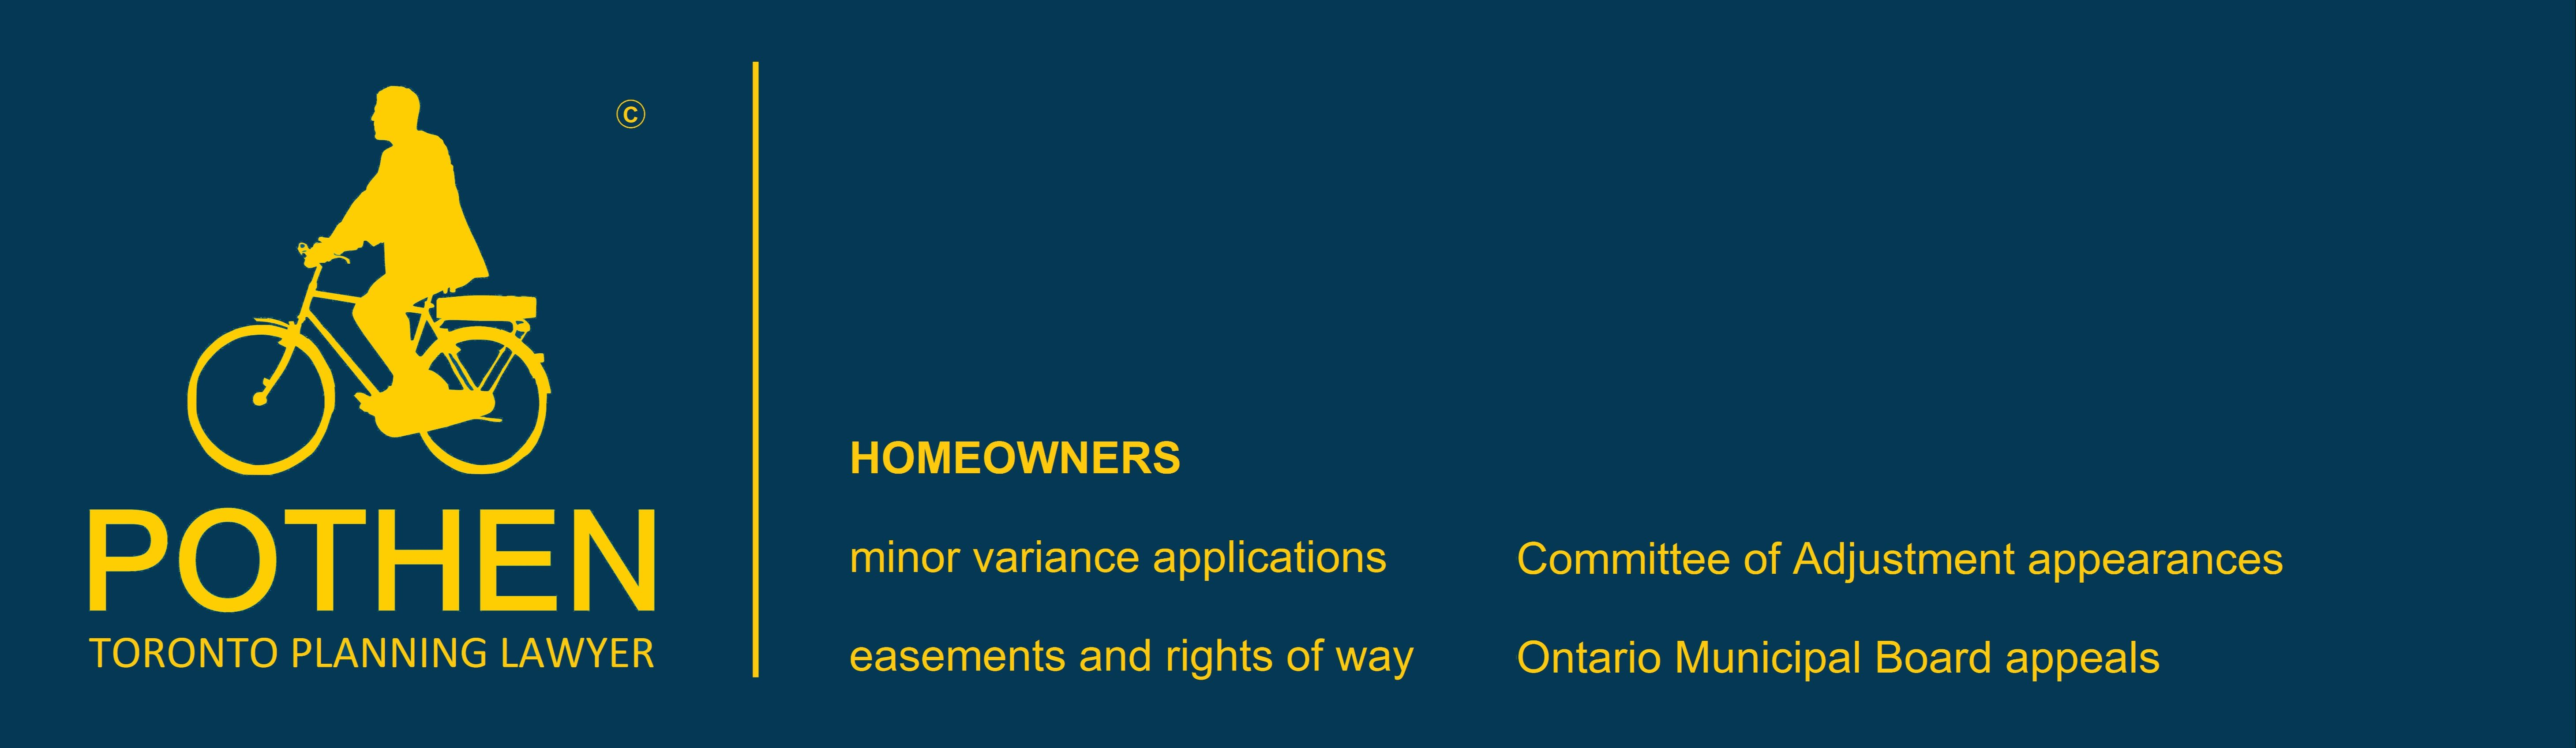 Pothen Toronto Planning Lawyer Homeowners Whether You Are A Homeowner Or Builder If Considering Expanding Rebuilding Extending Renovating Your Existing Home Should Start By Consulting